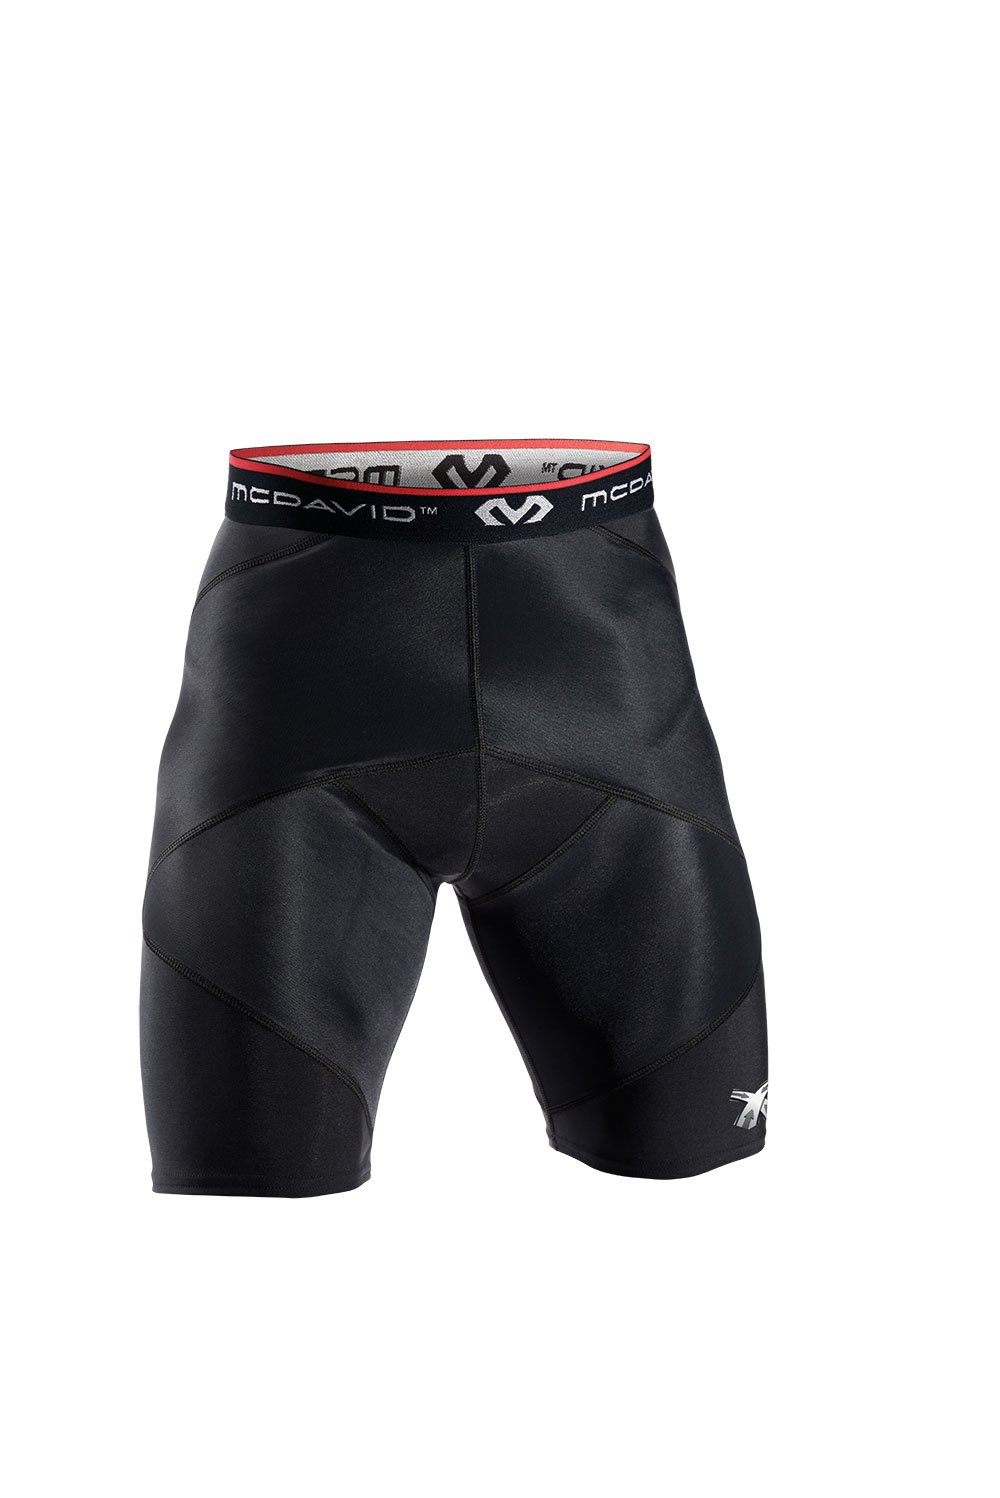 McDavid Cross Compression Shorts, Black, XX-Large